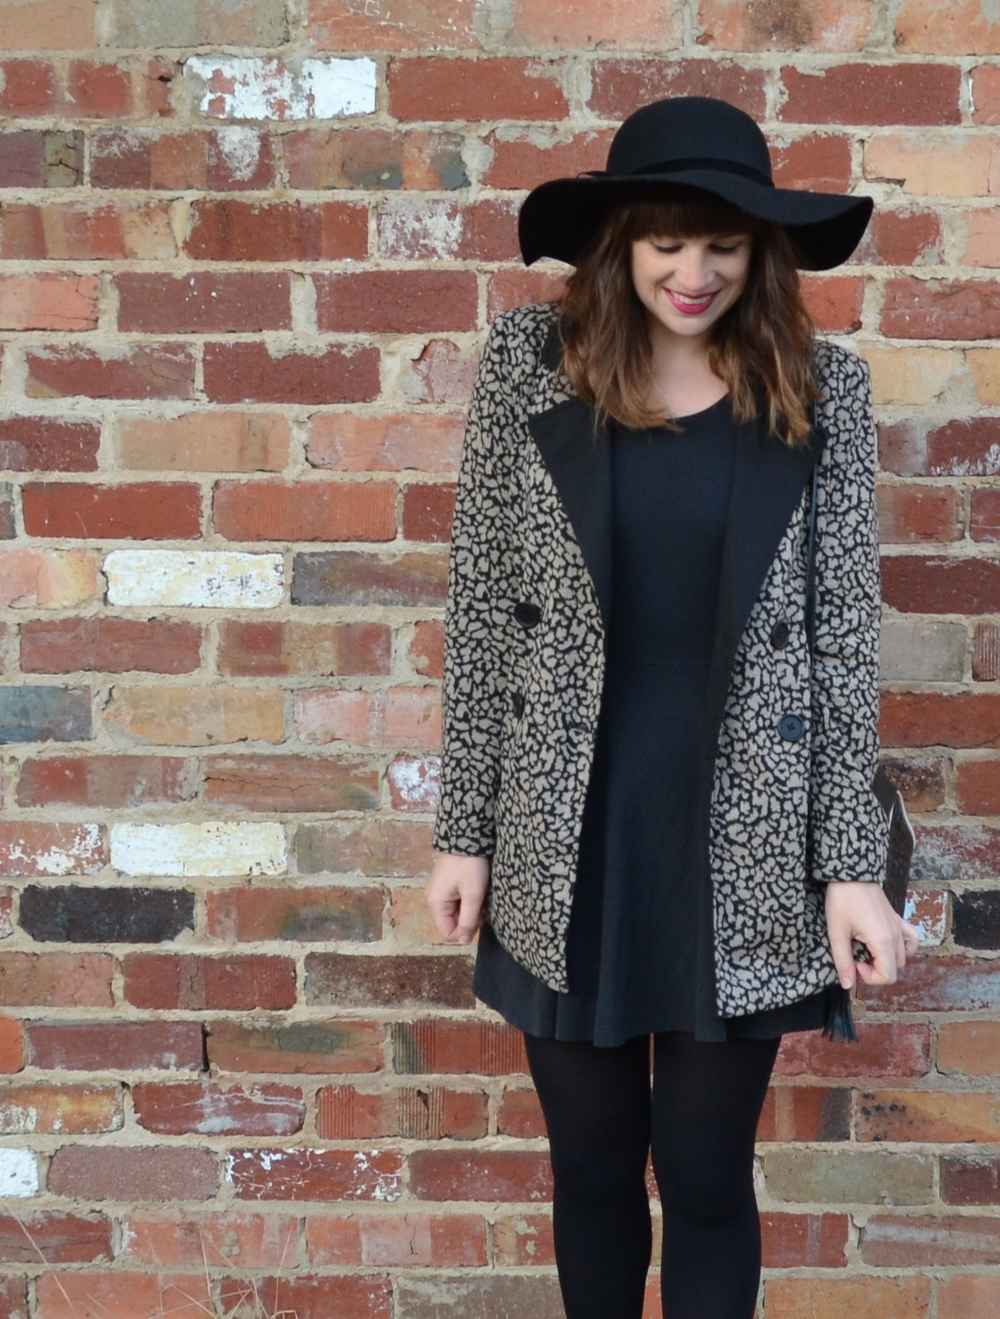 black-felt-floppy-hat-statement-winter-coat